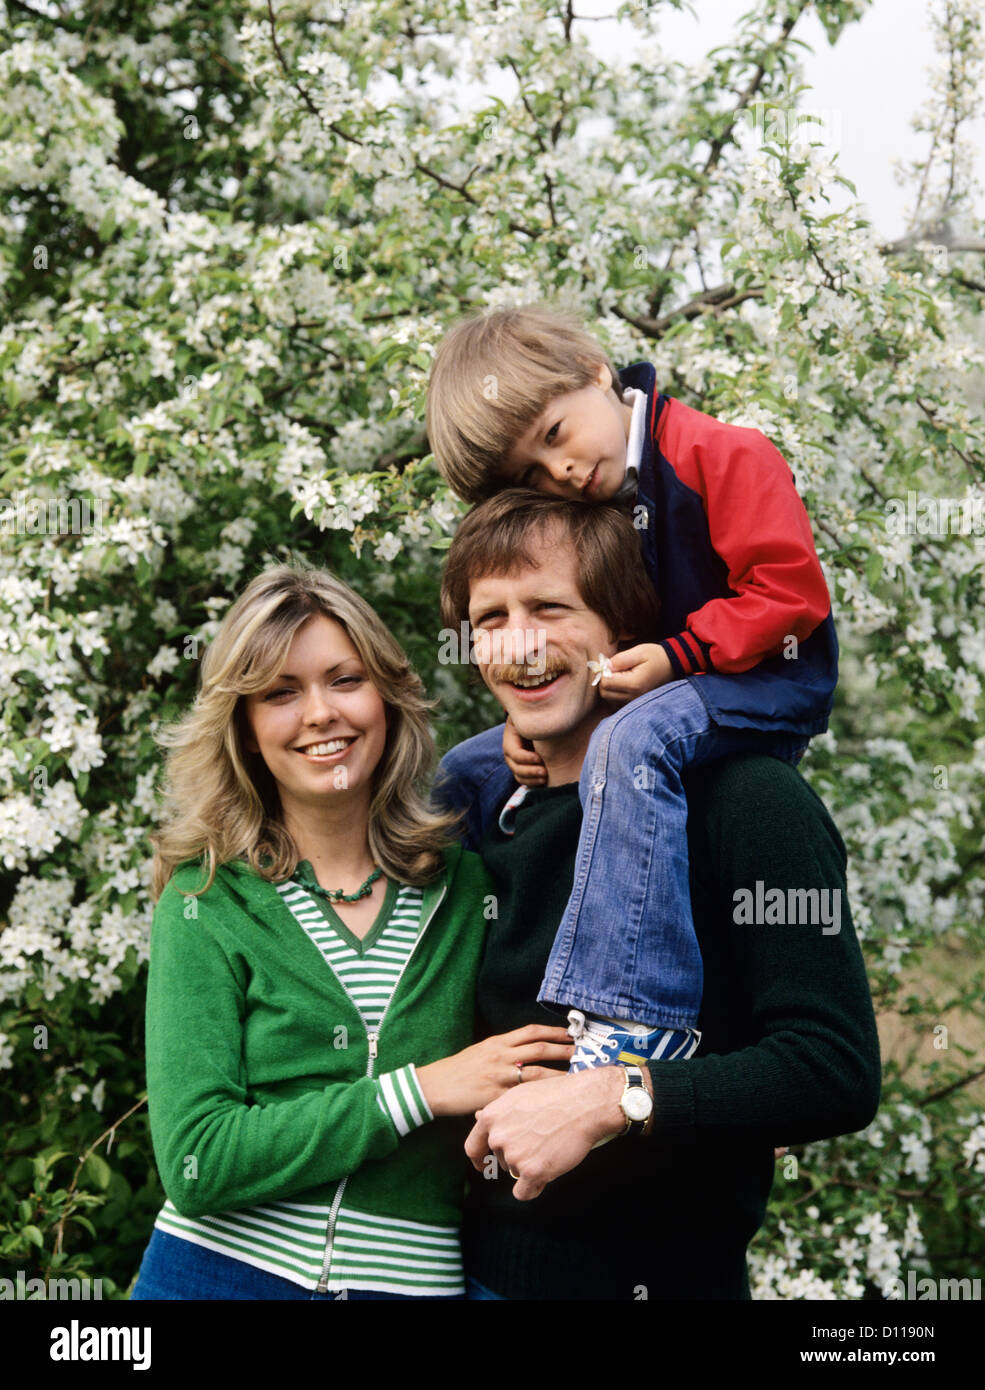 1970s FAMILY OUTDOORS MOTHER AND FATHER CARRYING SON ON SHOULDERS - Stock Image